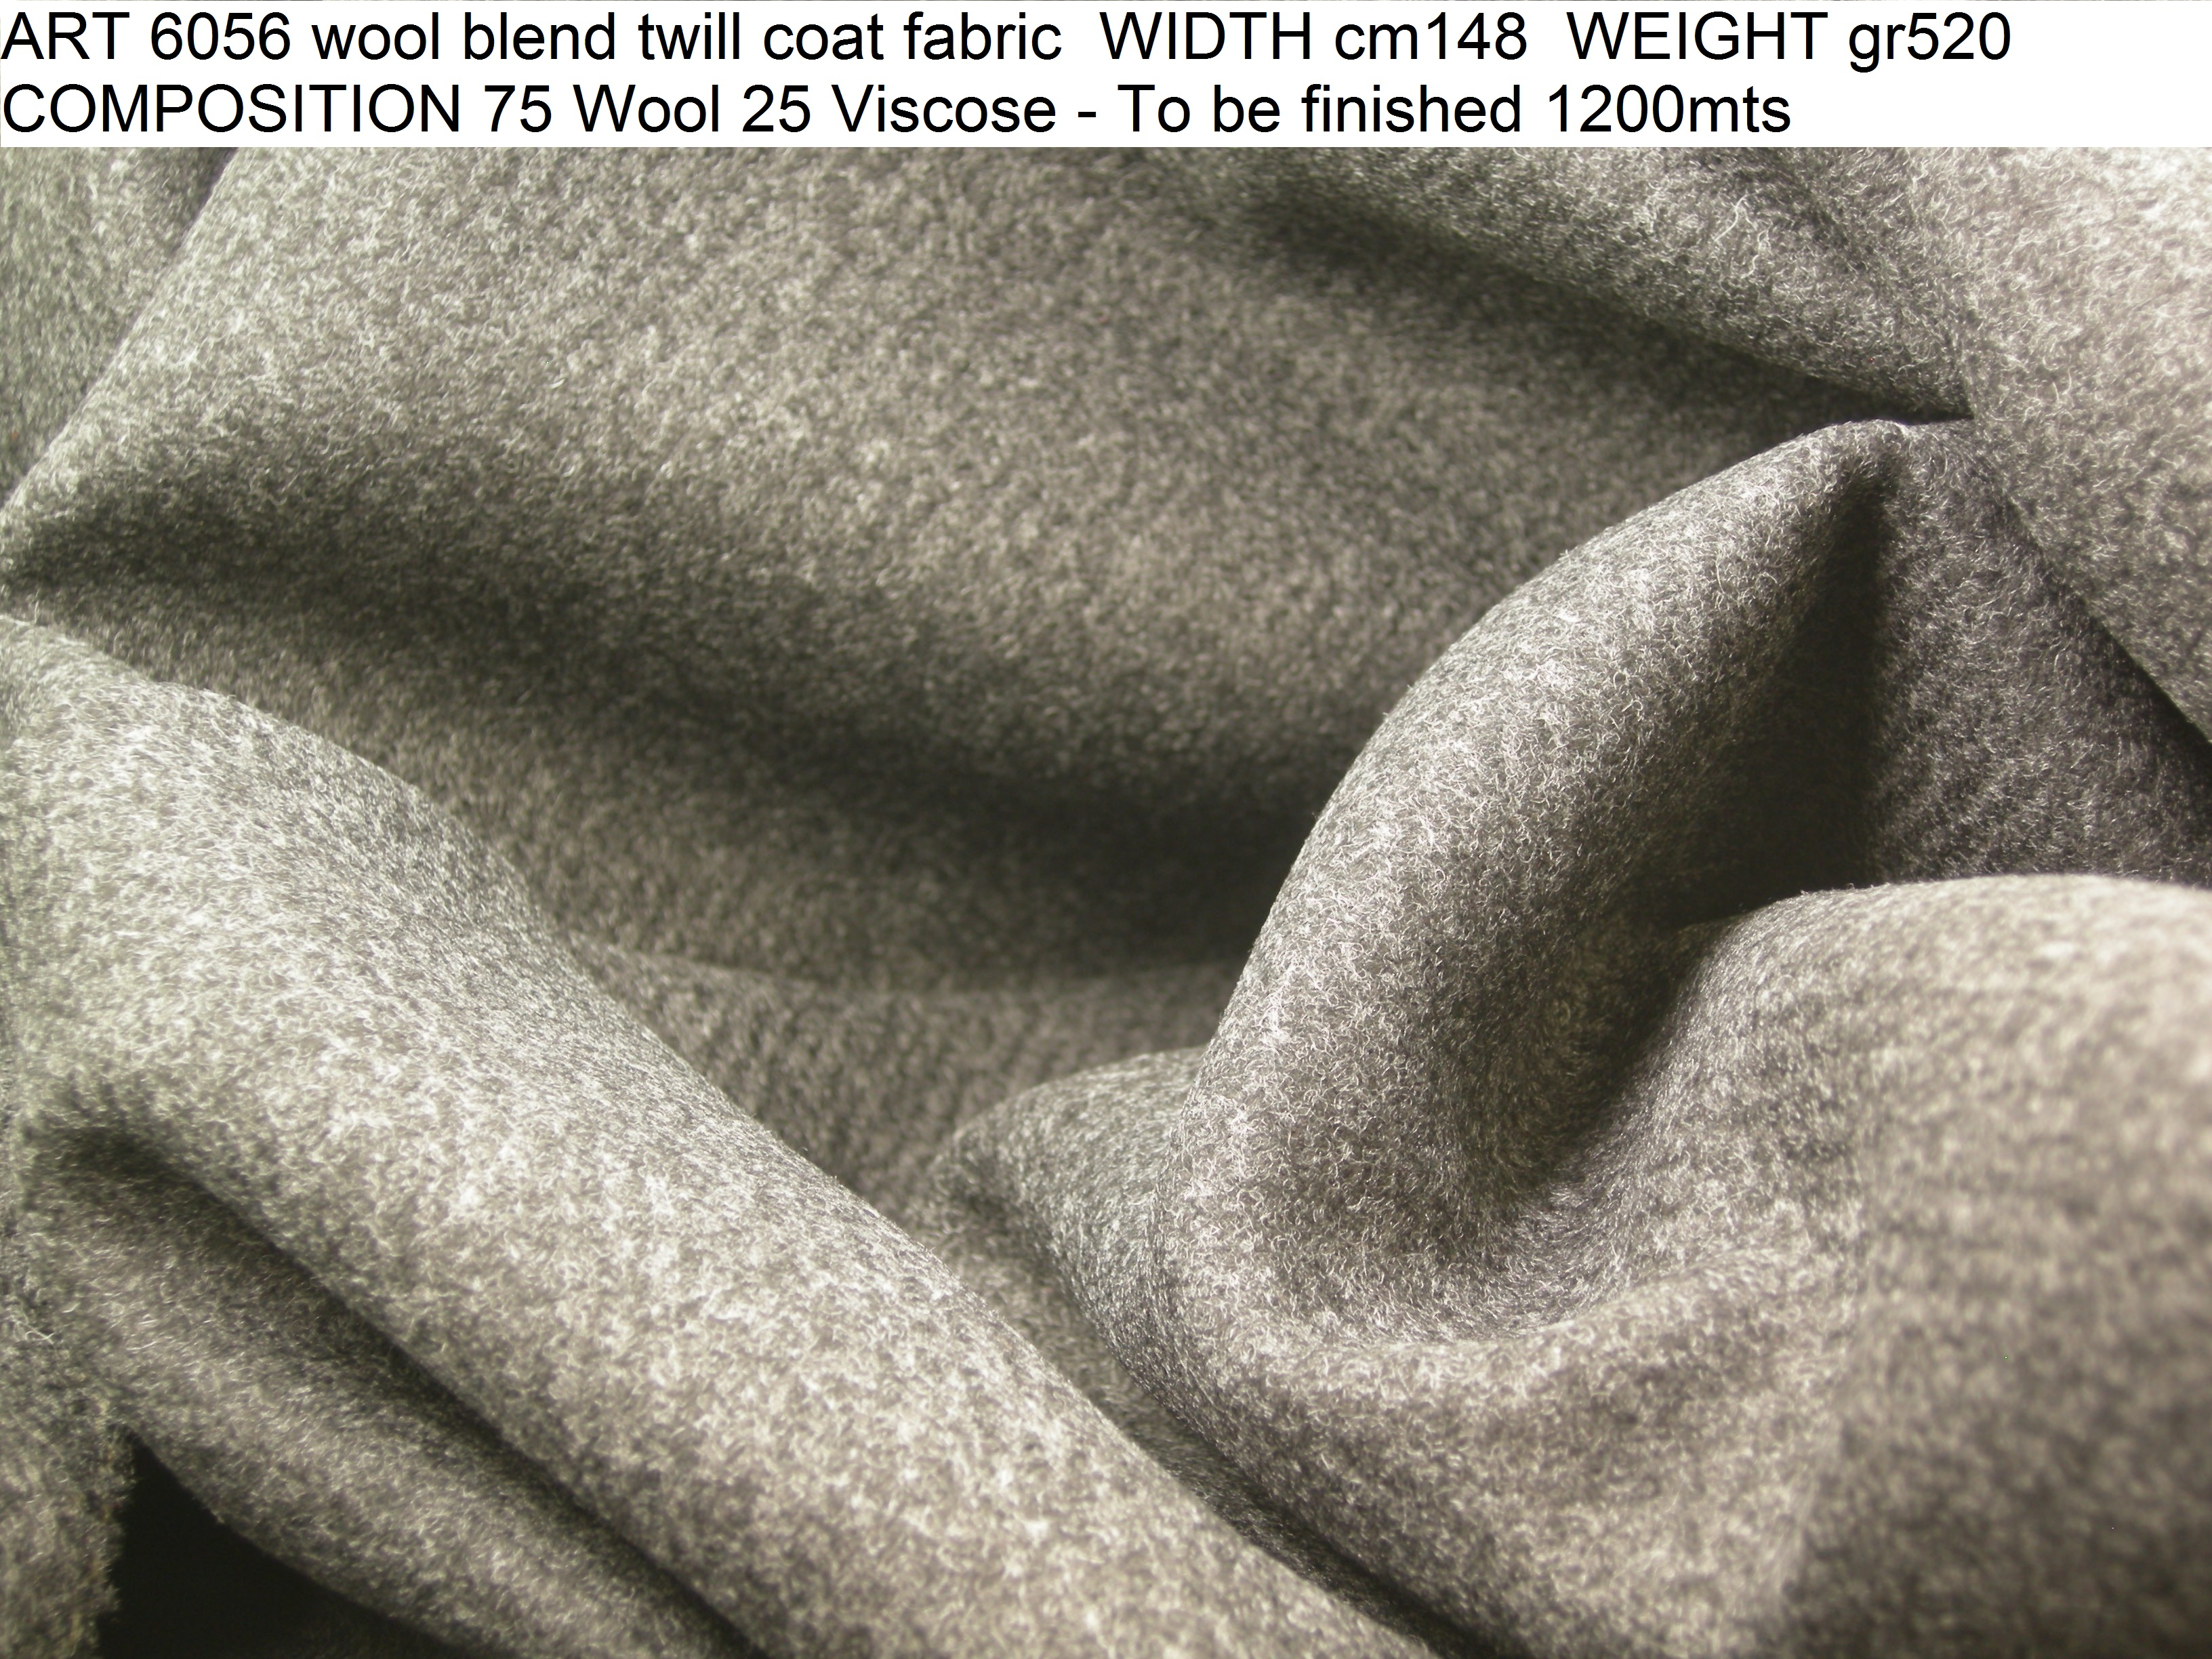 ART 6056 wool blend twill coat fabric WIDTH cm148 WEIGHT gr520 COMPOSITION 75 Wool 25 Viscose - To be finished 1200mts